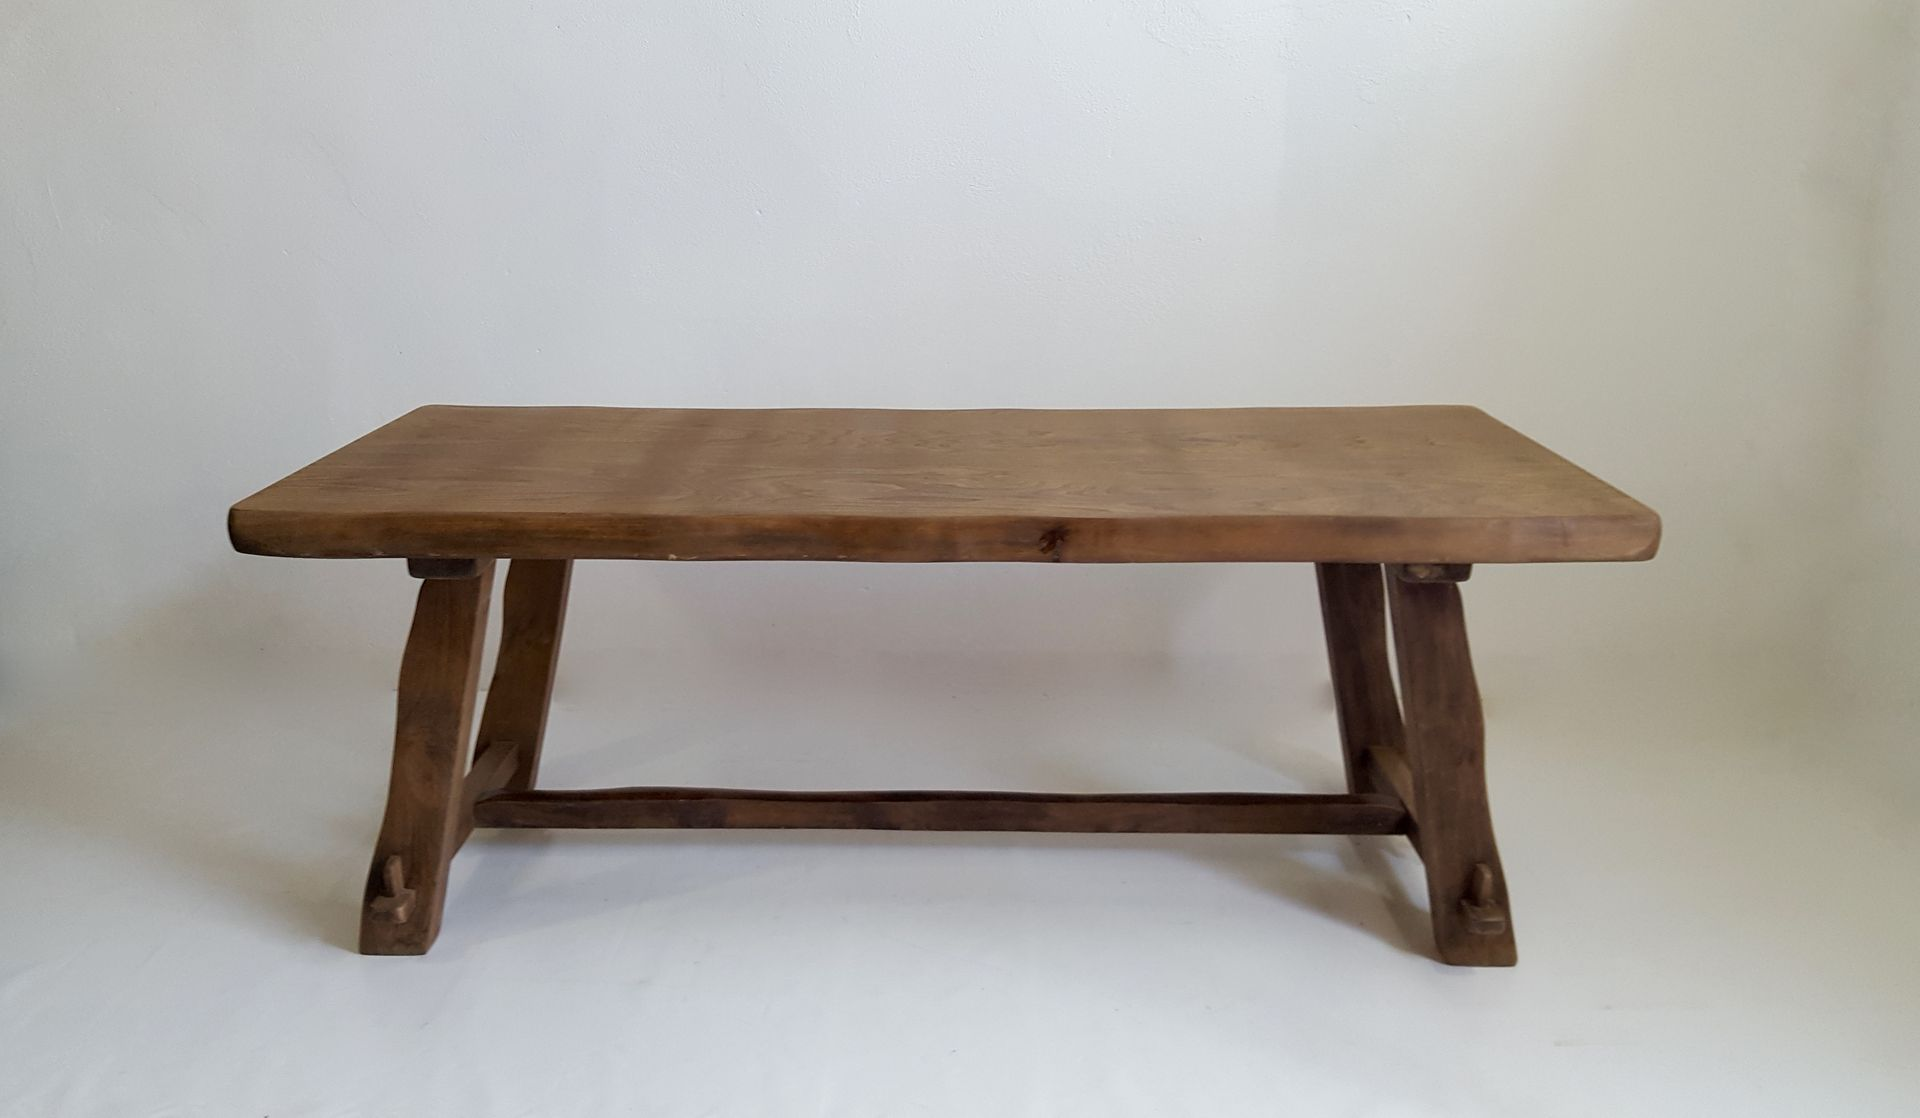 Model t dining table in elm wood by olavi hanninen for for New model wooden dining table